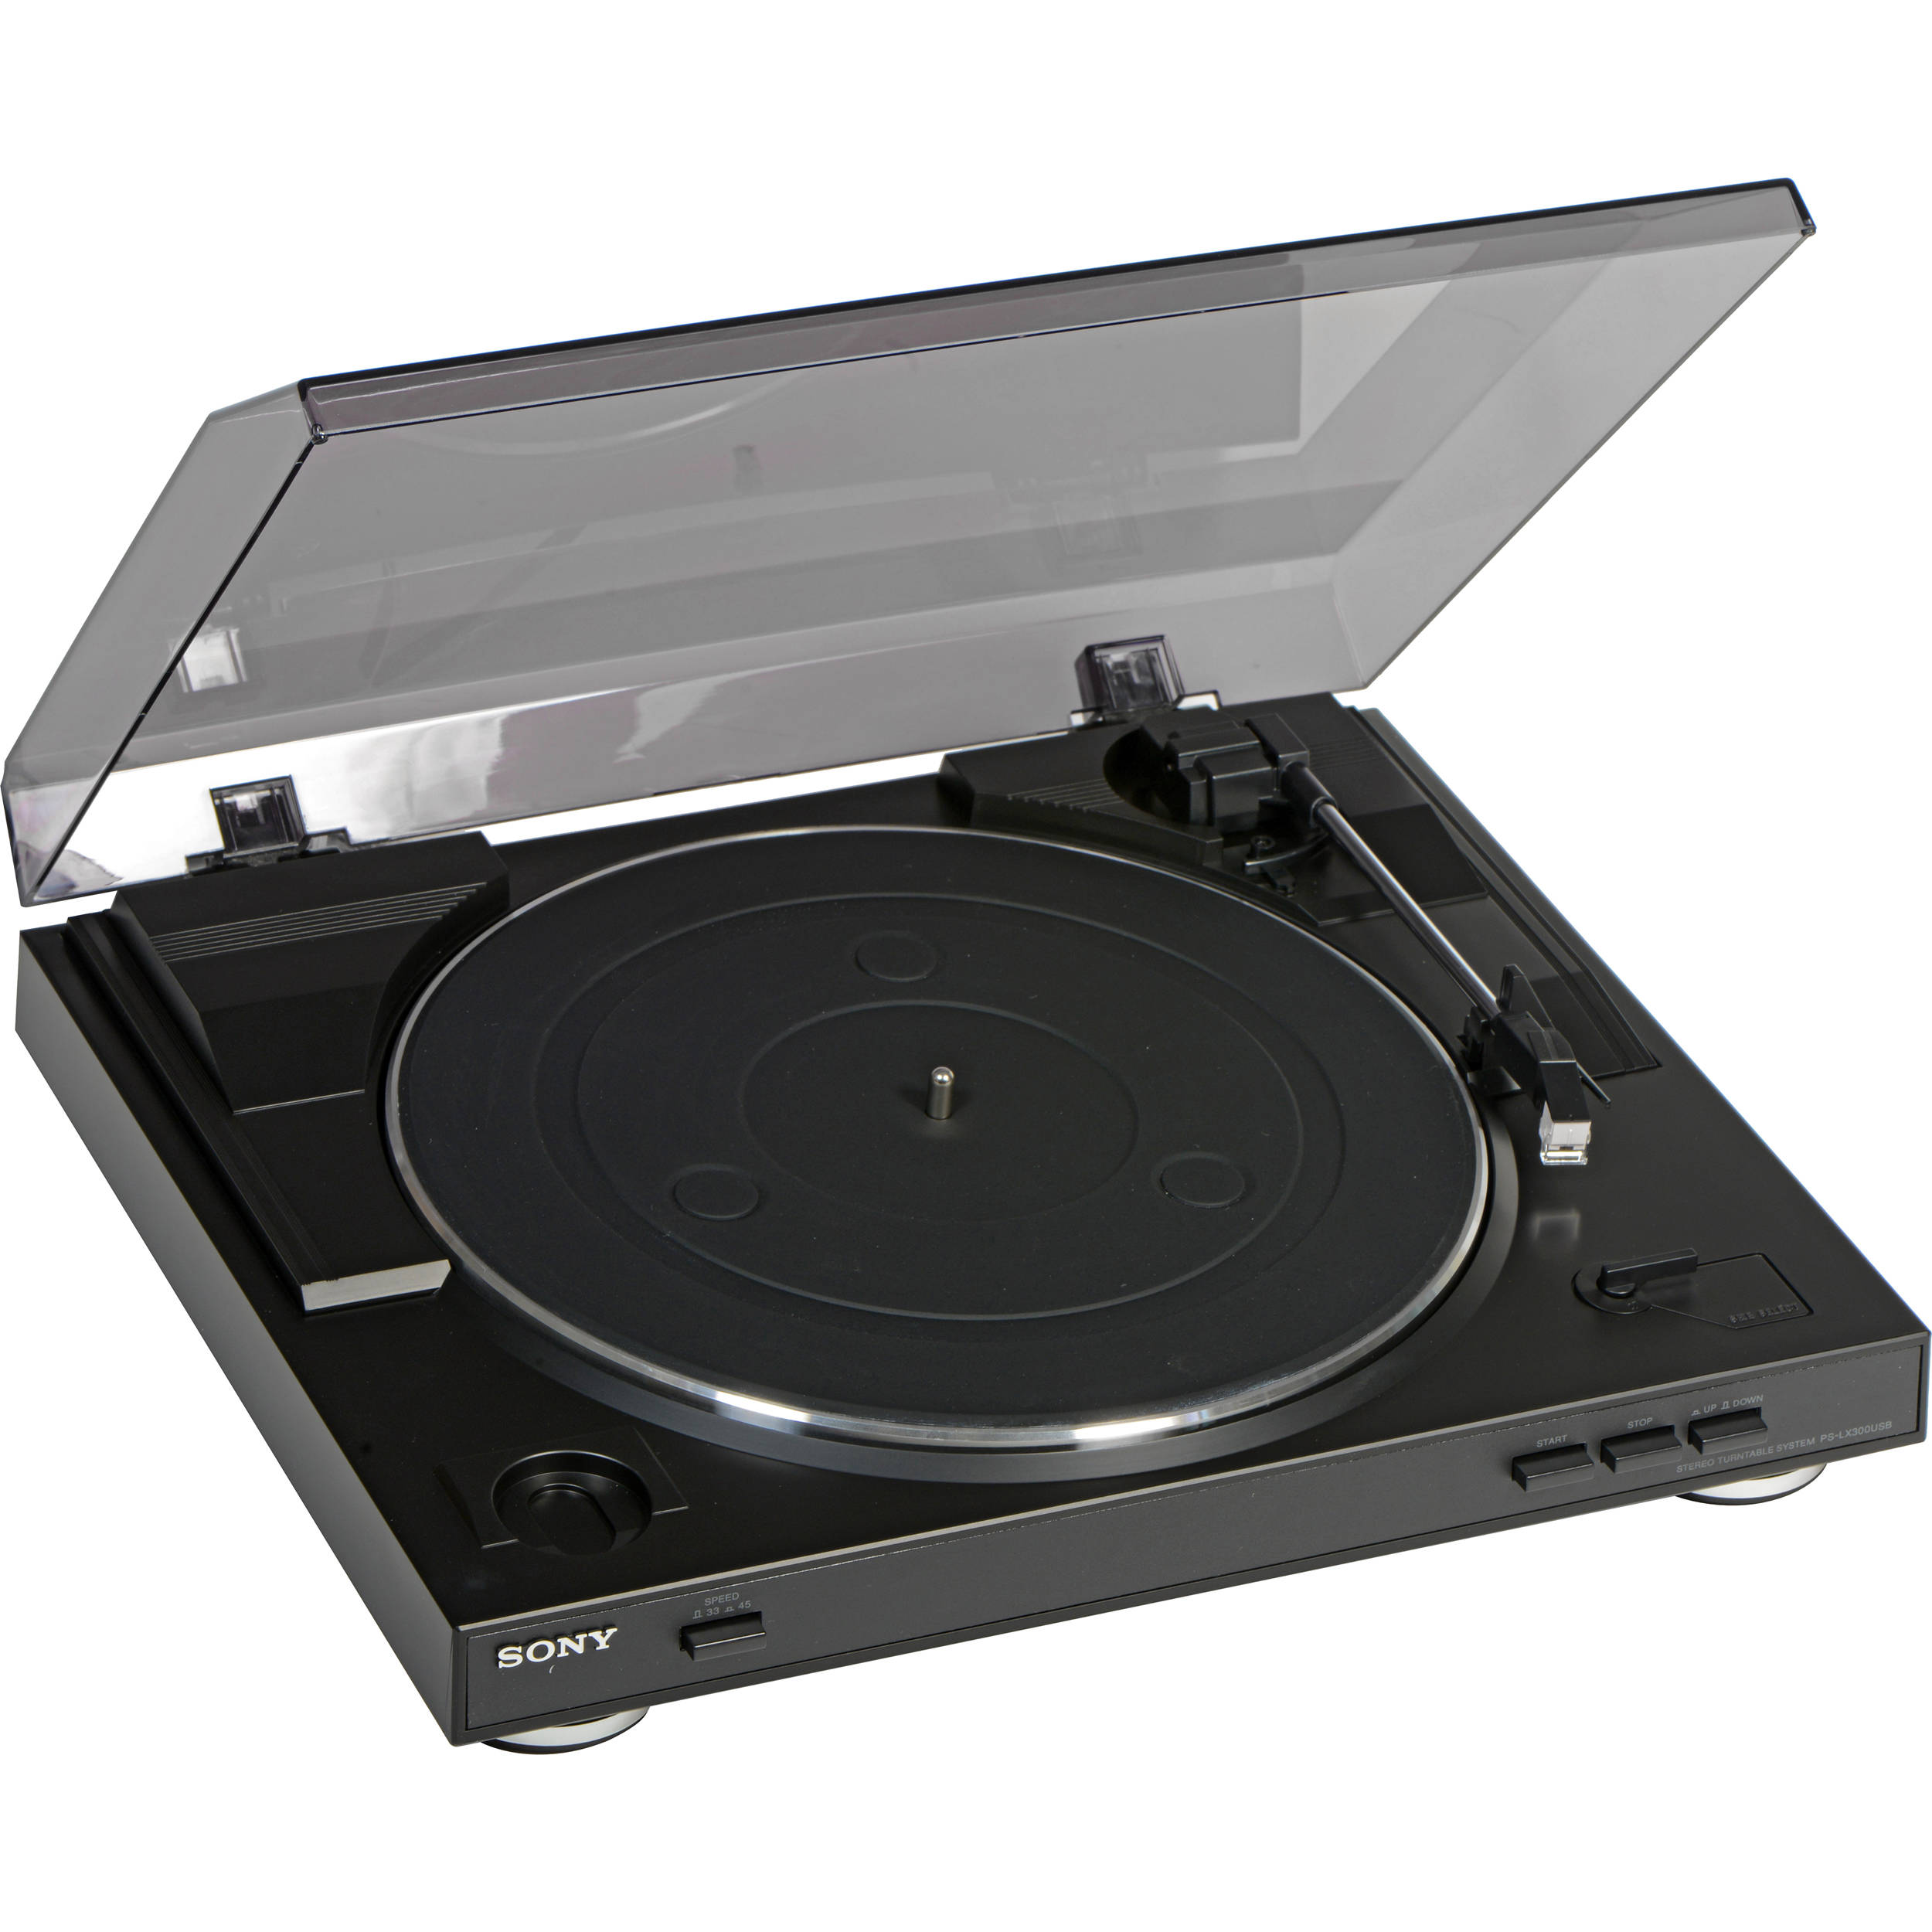 sony turntable. sony ps-lx300usb usb stereo turntable p